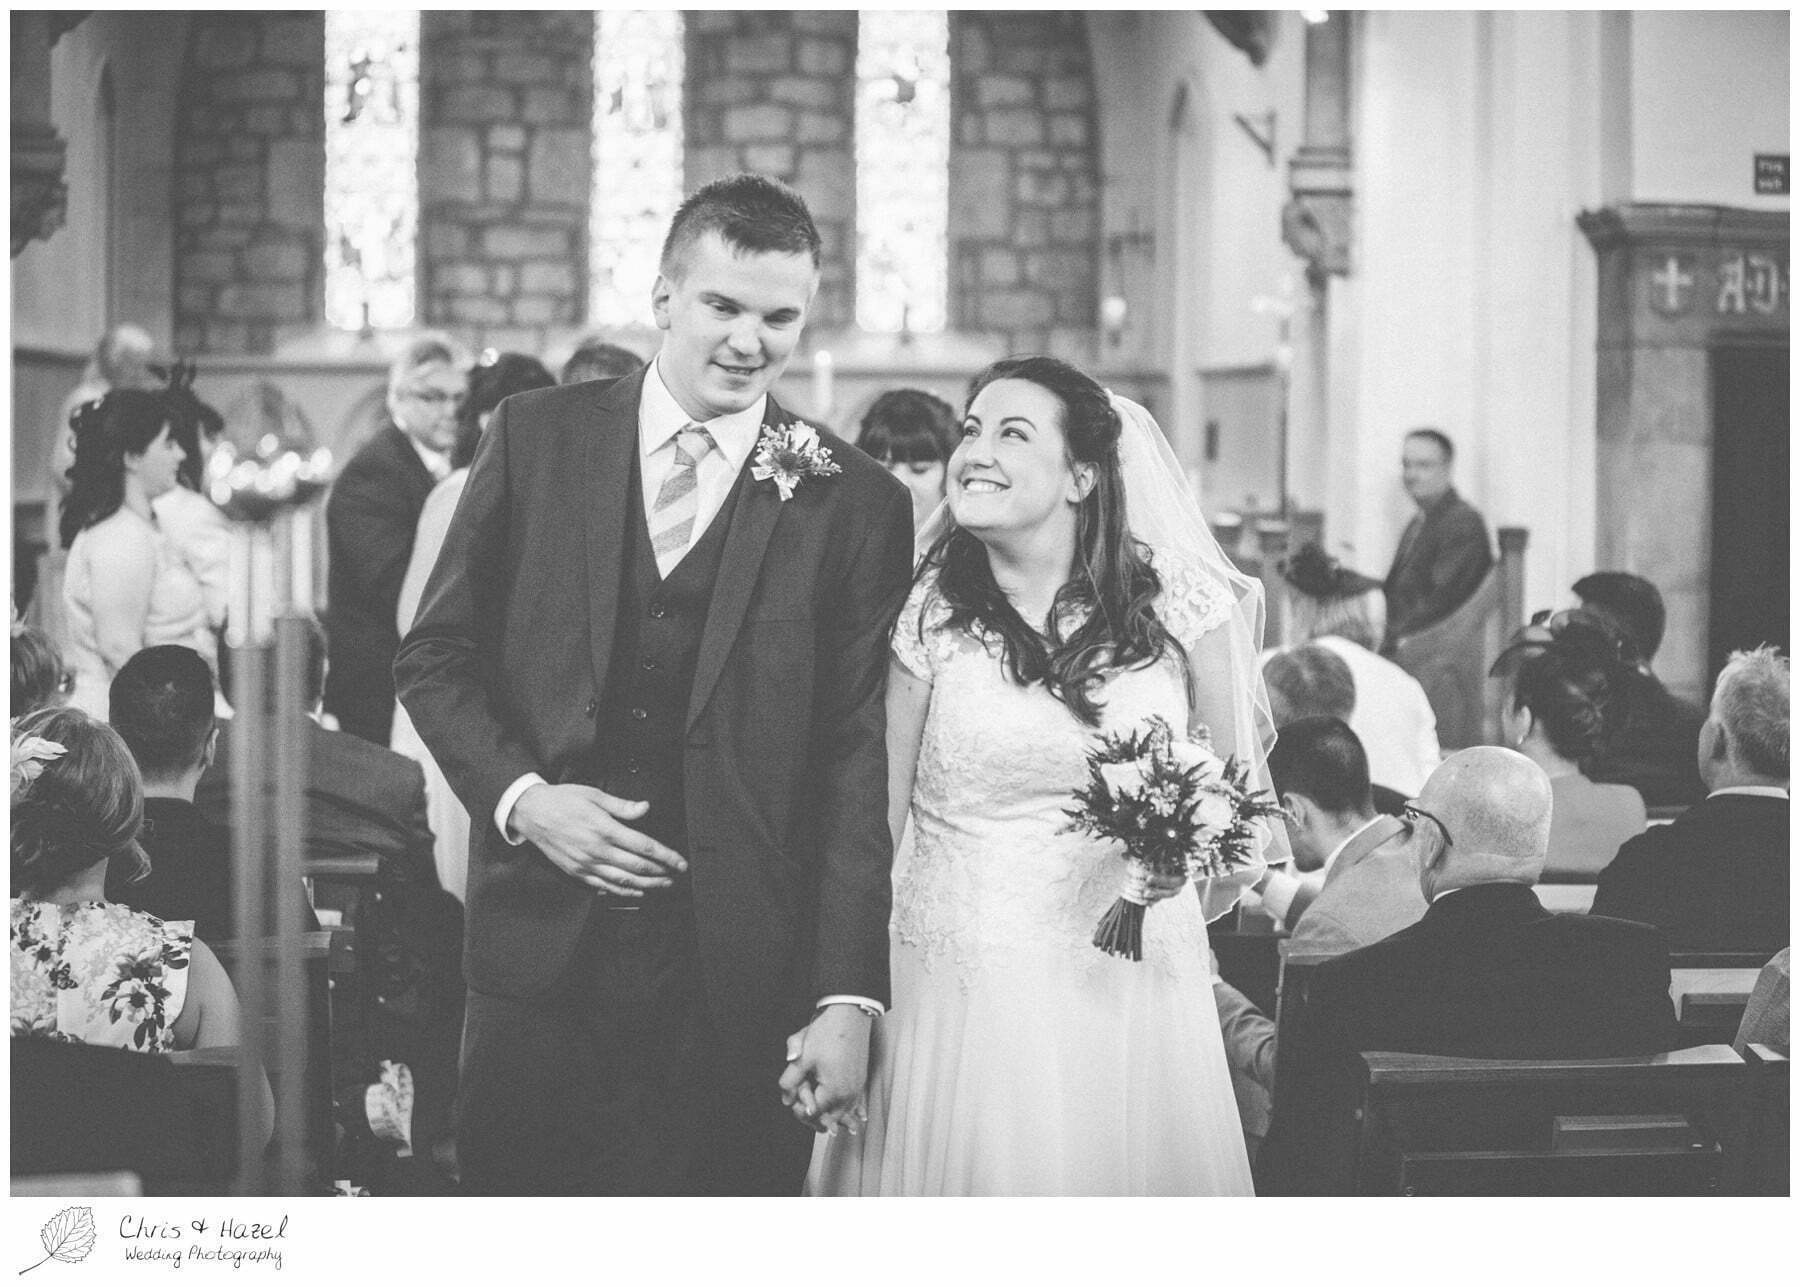 bride and groom walking down aisle, st marys church, wedding, south milford Wedding Photographer, the engine shed, Wedding Photography wetherby, Chris and Hazel Wedding Photography, stevie pollard, stevie standerline, paul standerline,